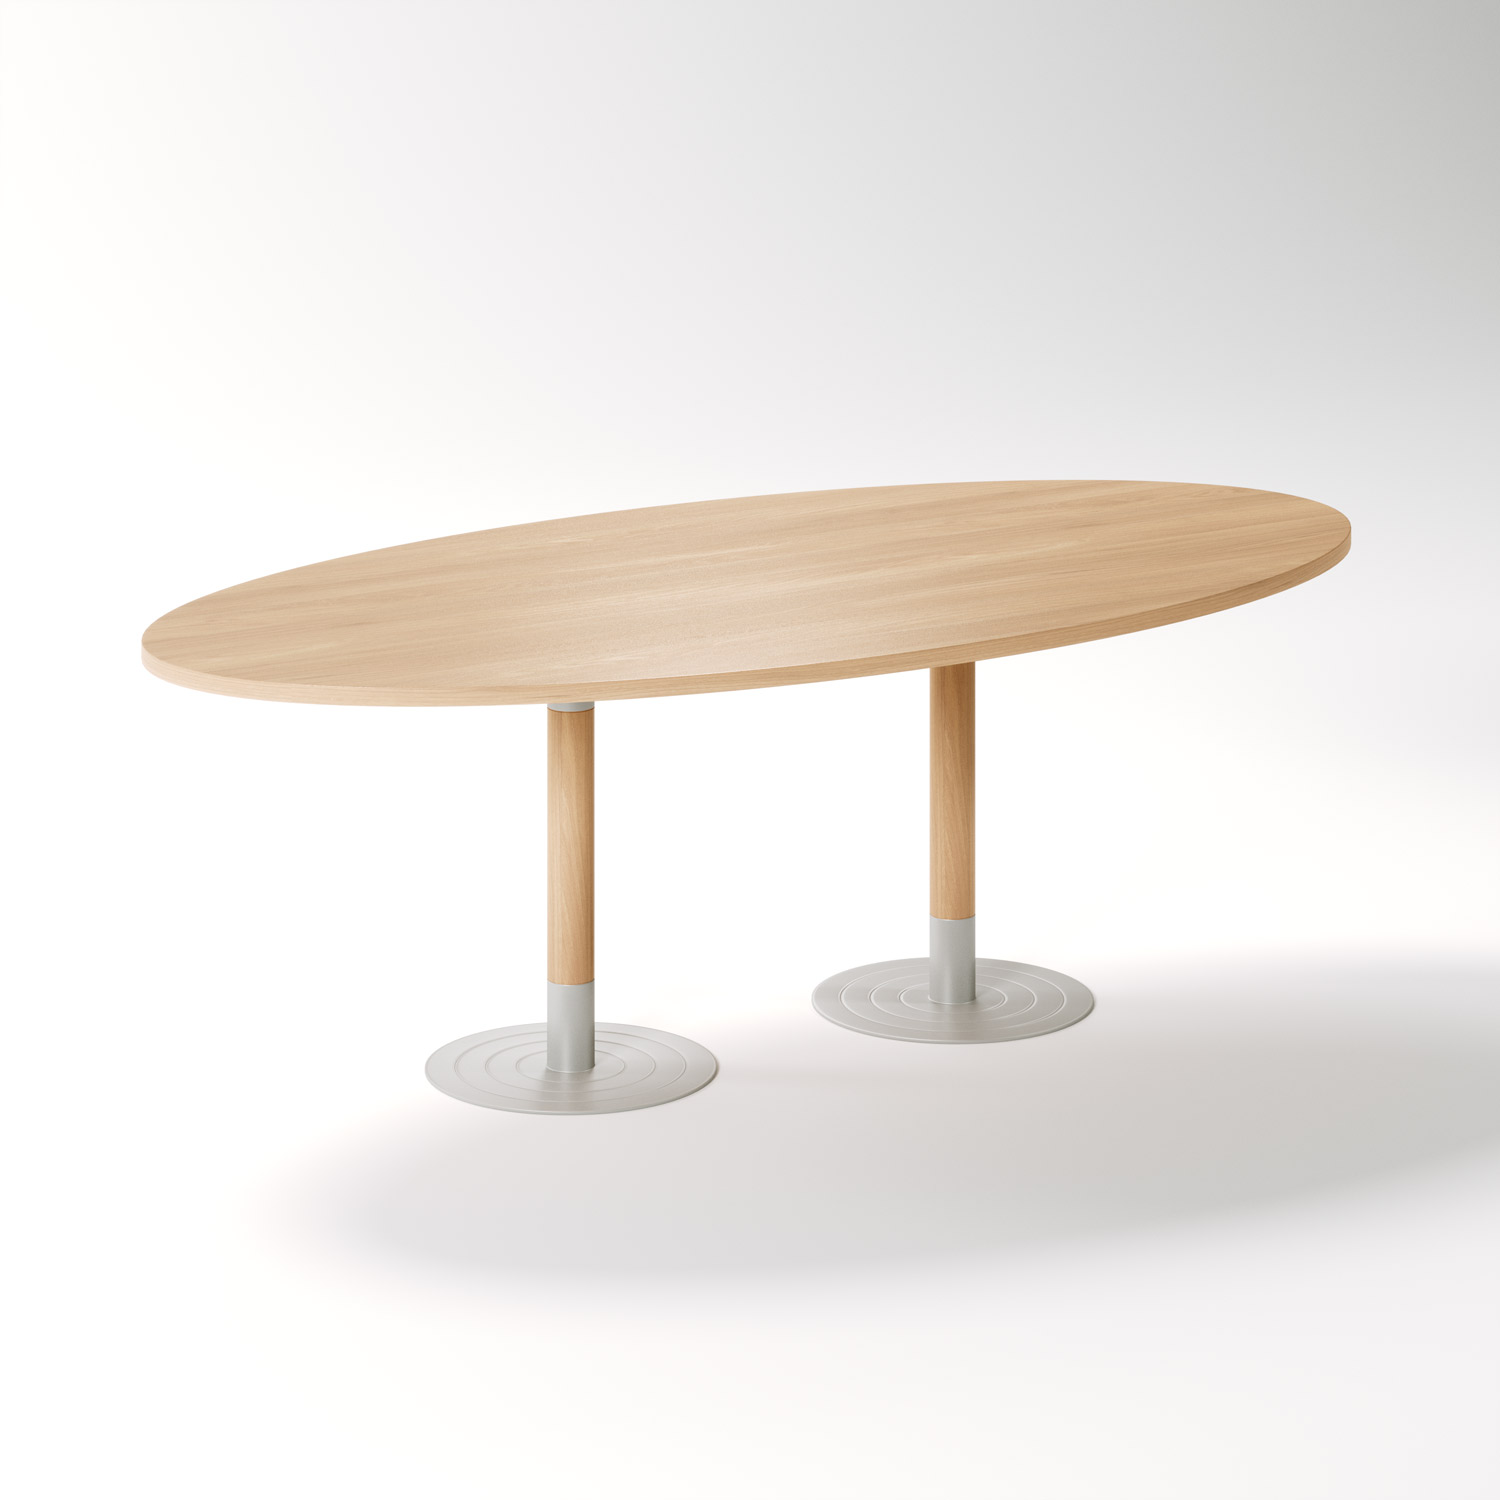 Specialised Aged Care Dining Stem Oval Table - Twin Pedestal, side view